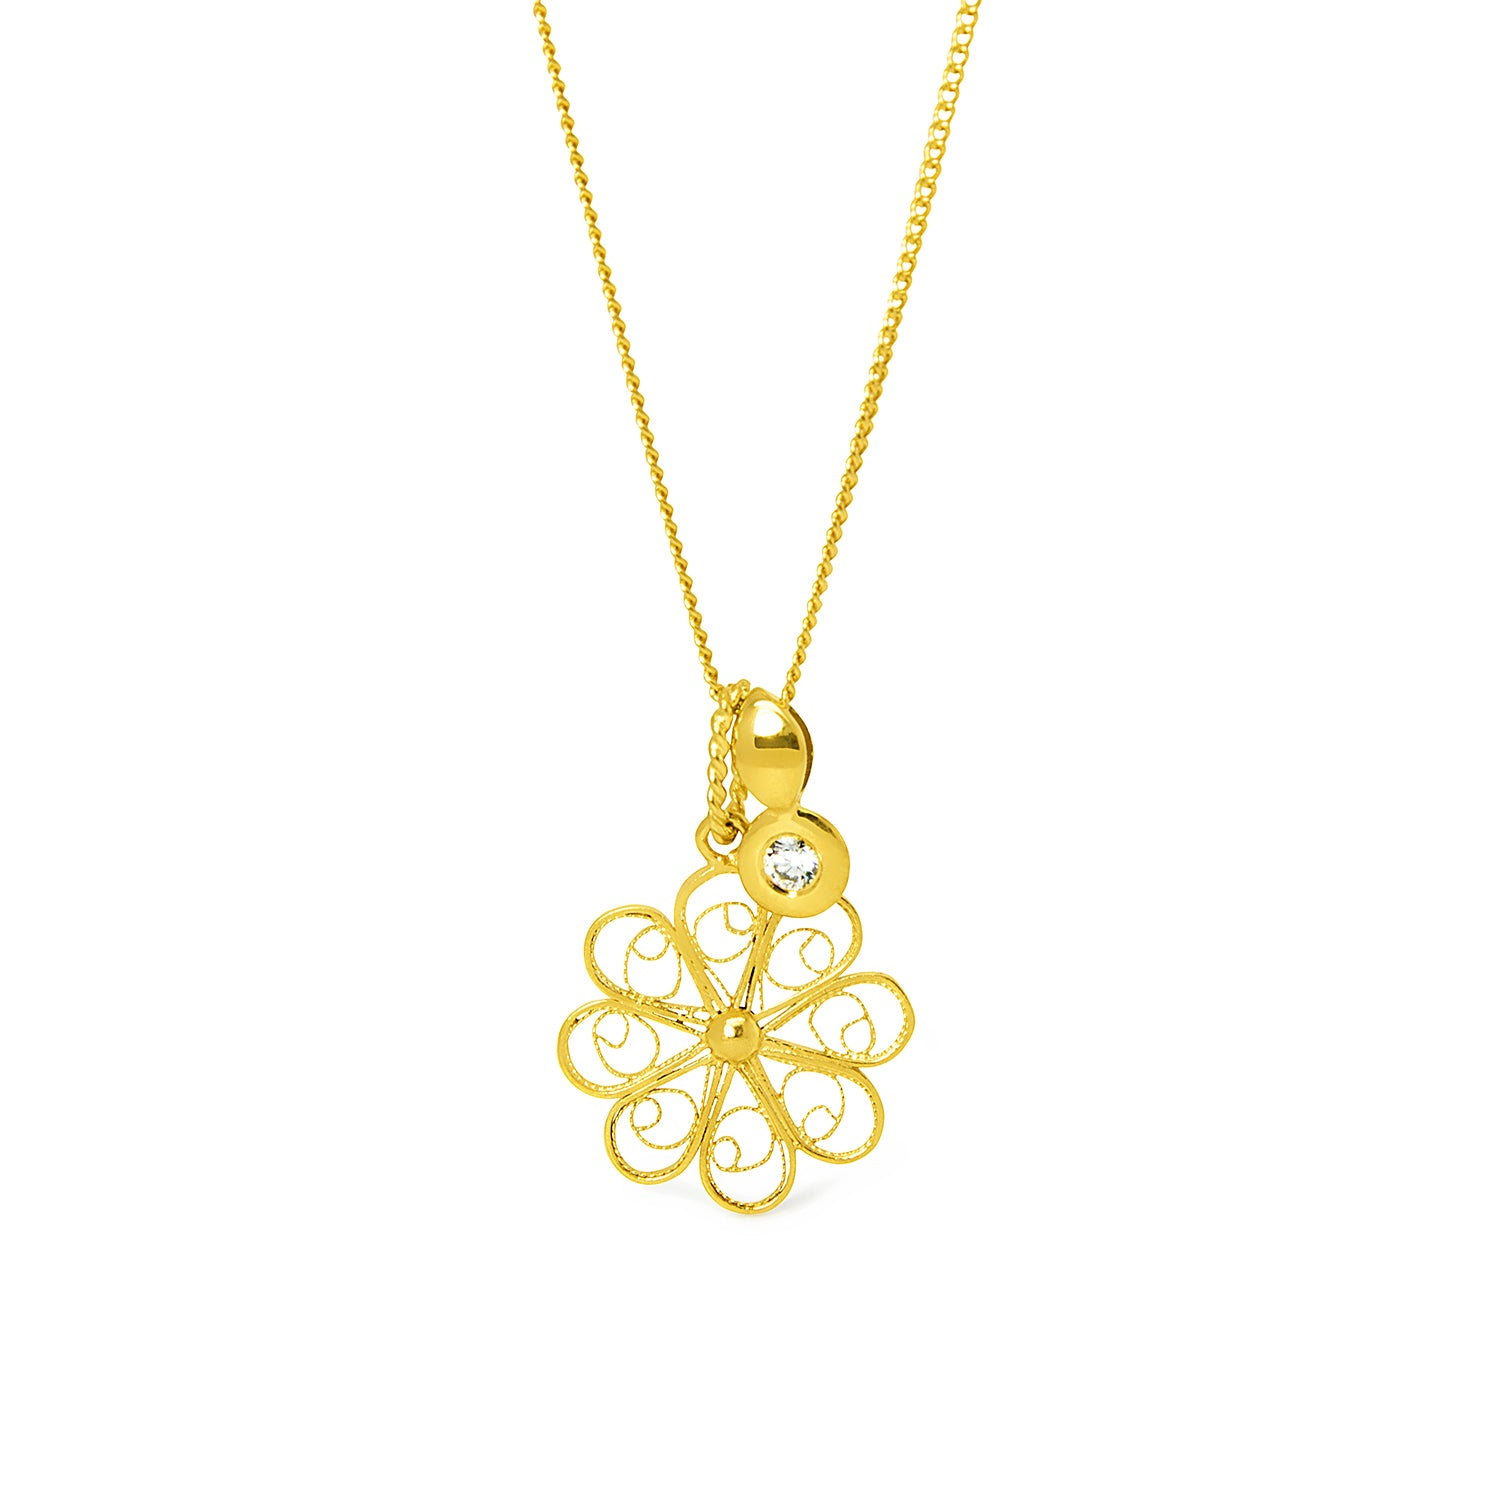 Rosette Pendant with Diamond. Yellow Gold